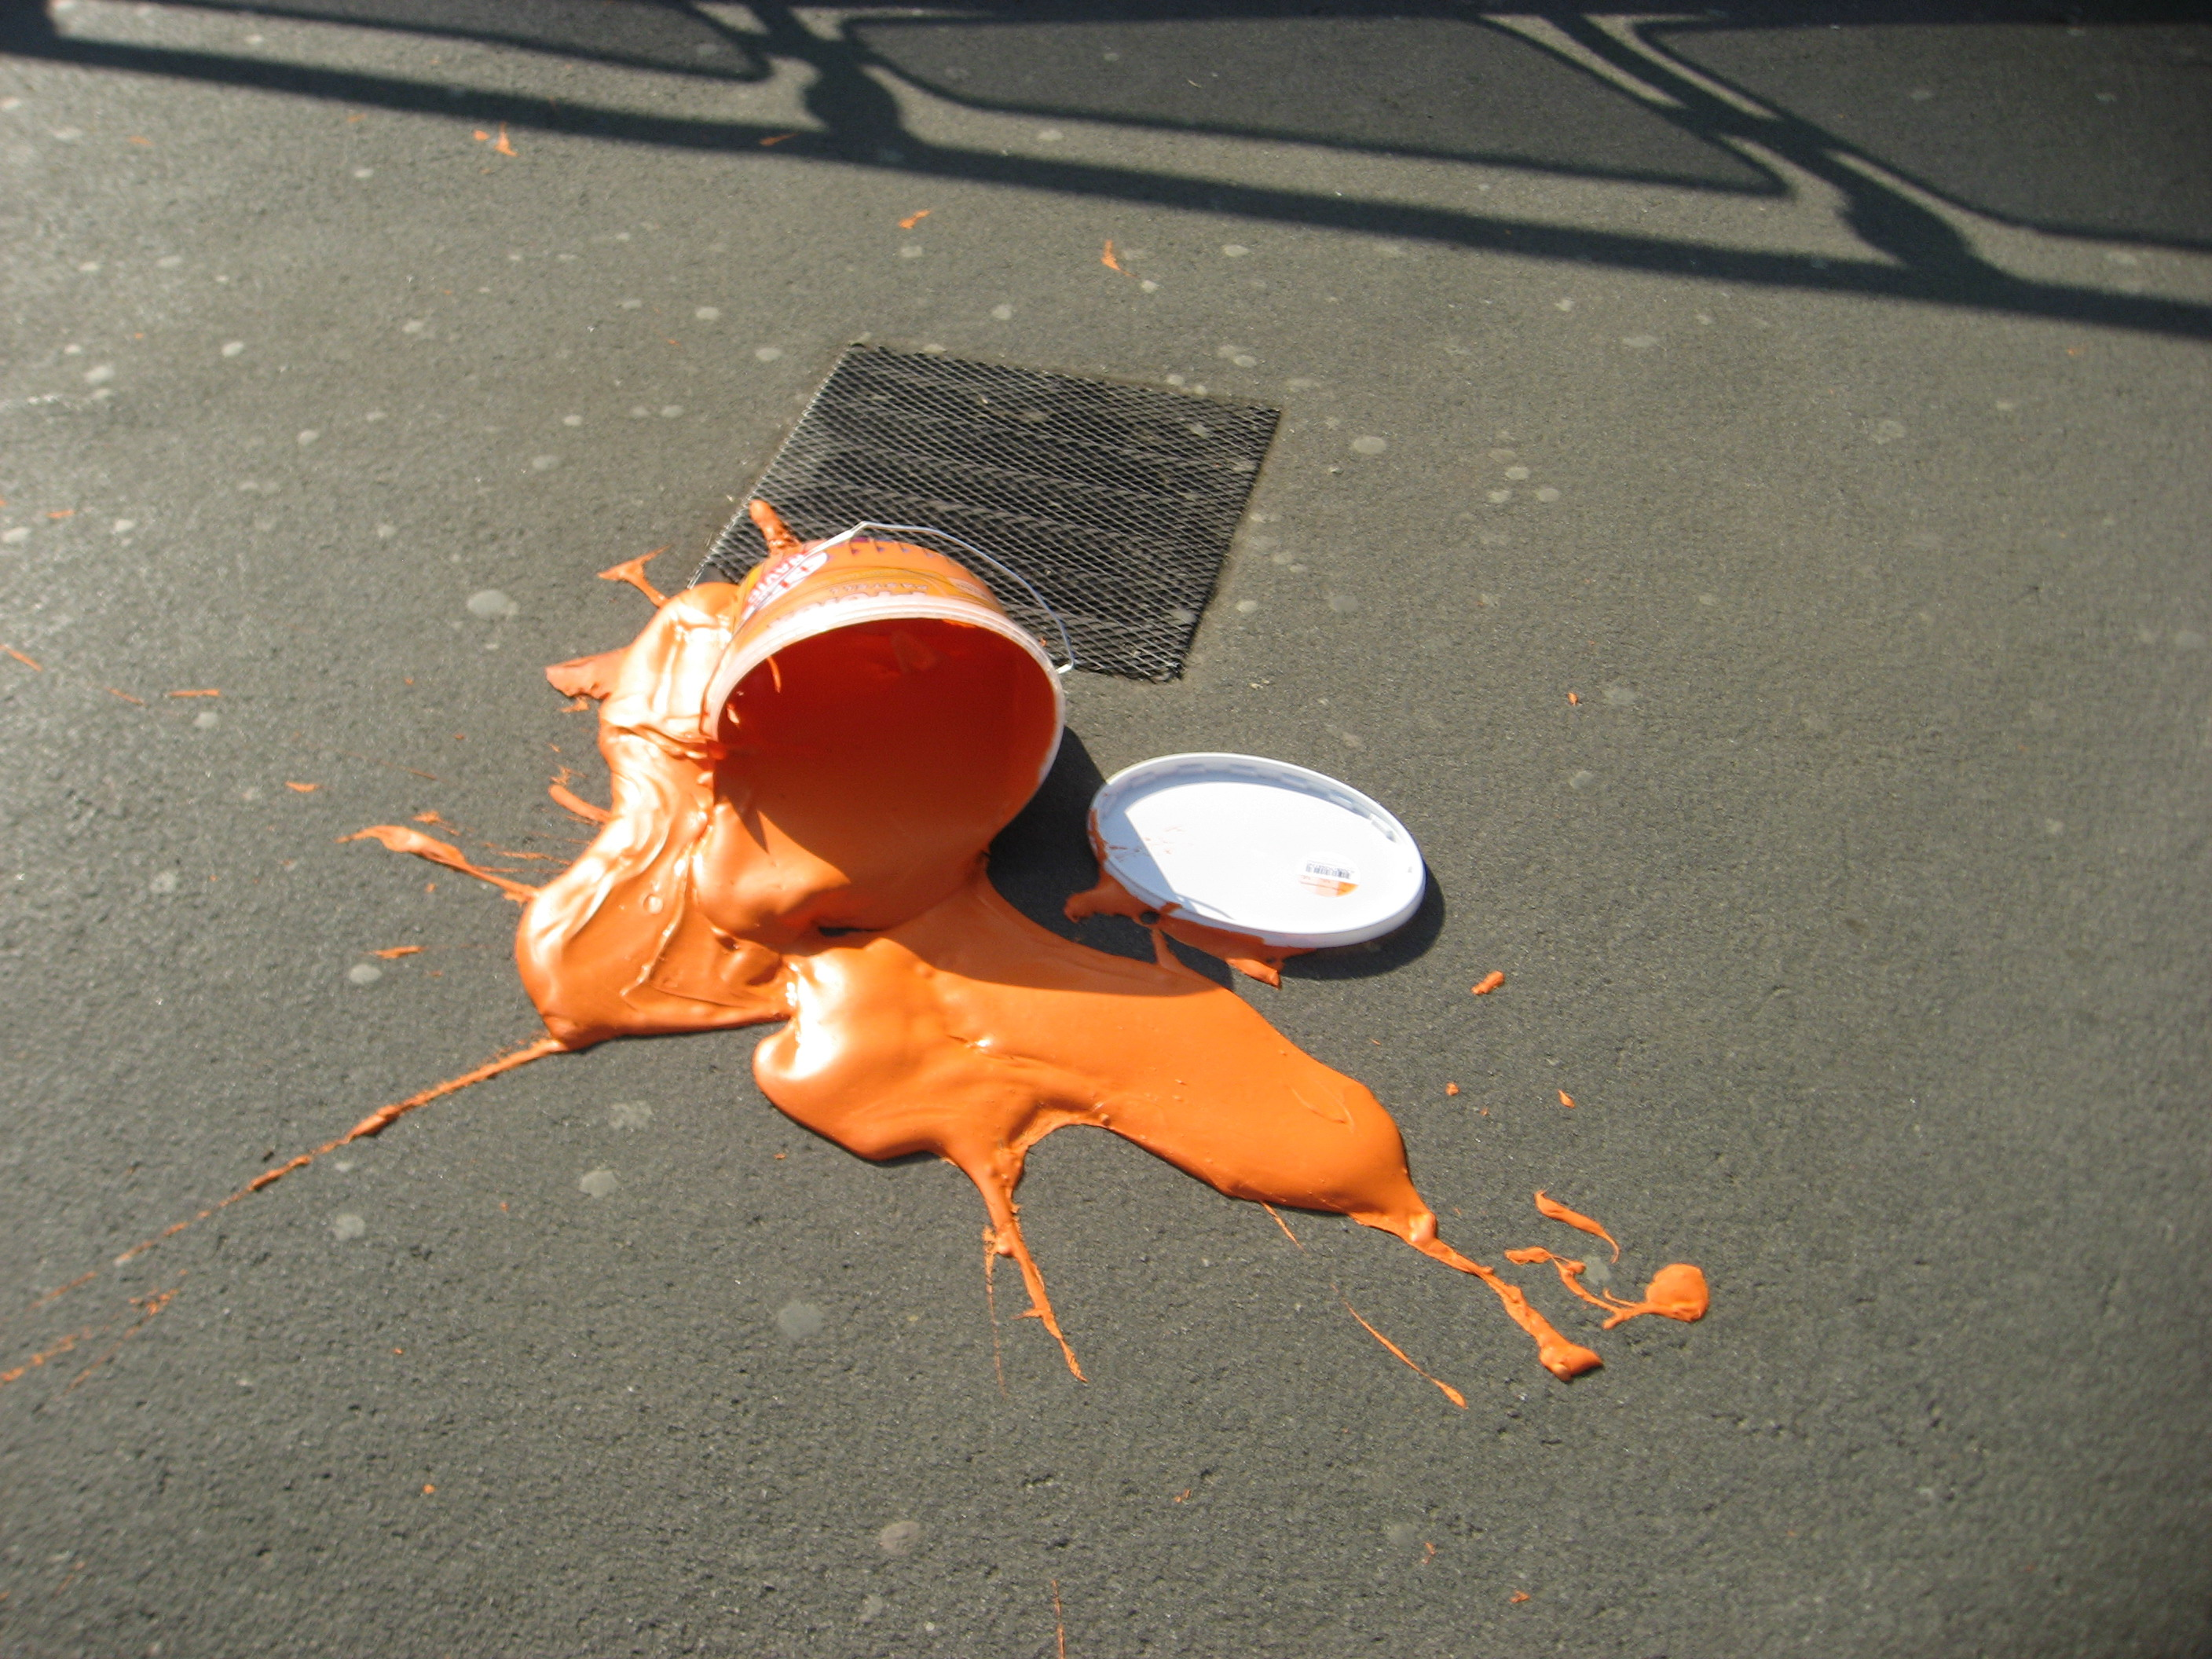 A spilled bucket of orange paint on the pavement